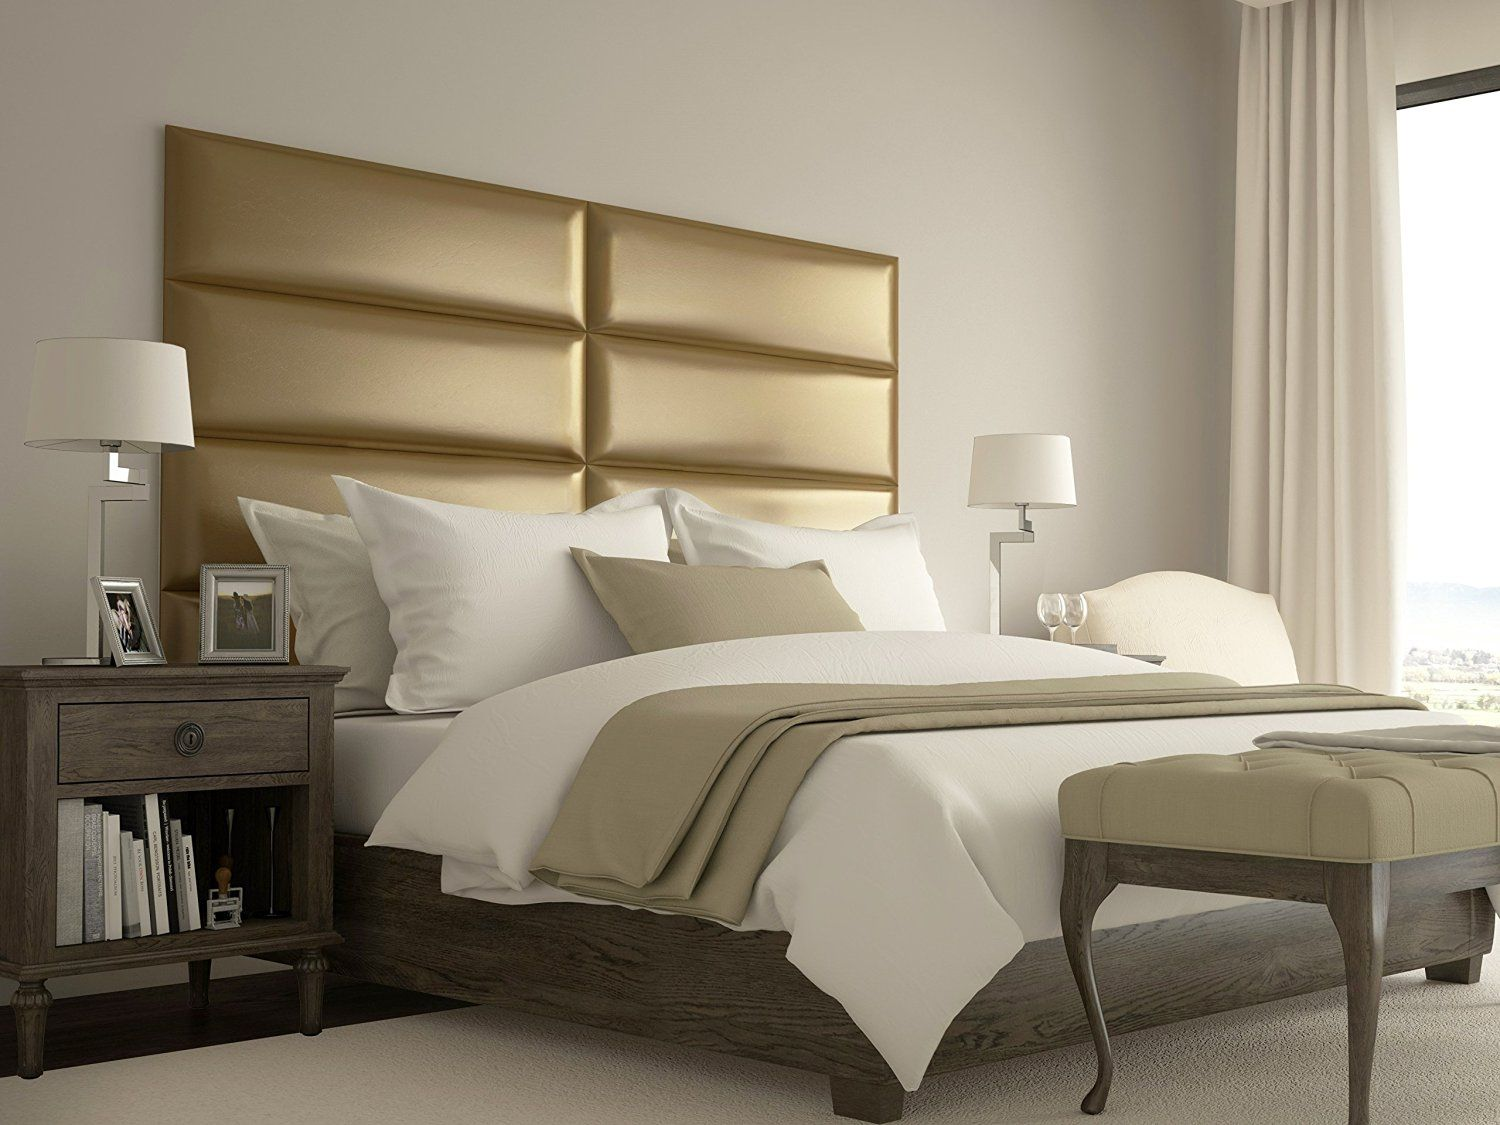 From Simple Classic Styles To Elegant Metal Gold Headboard Create